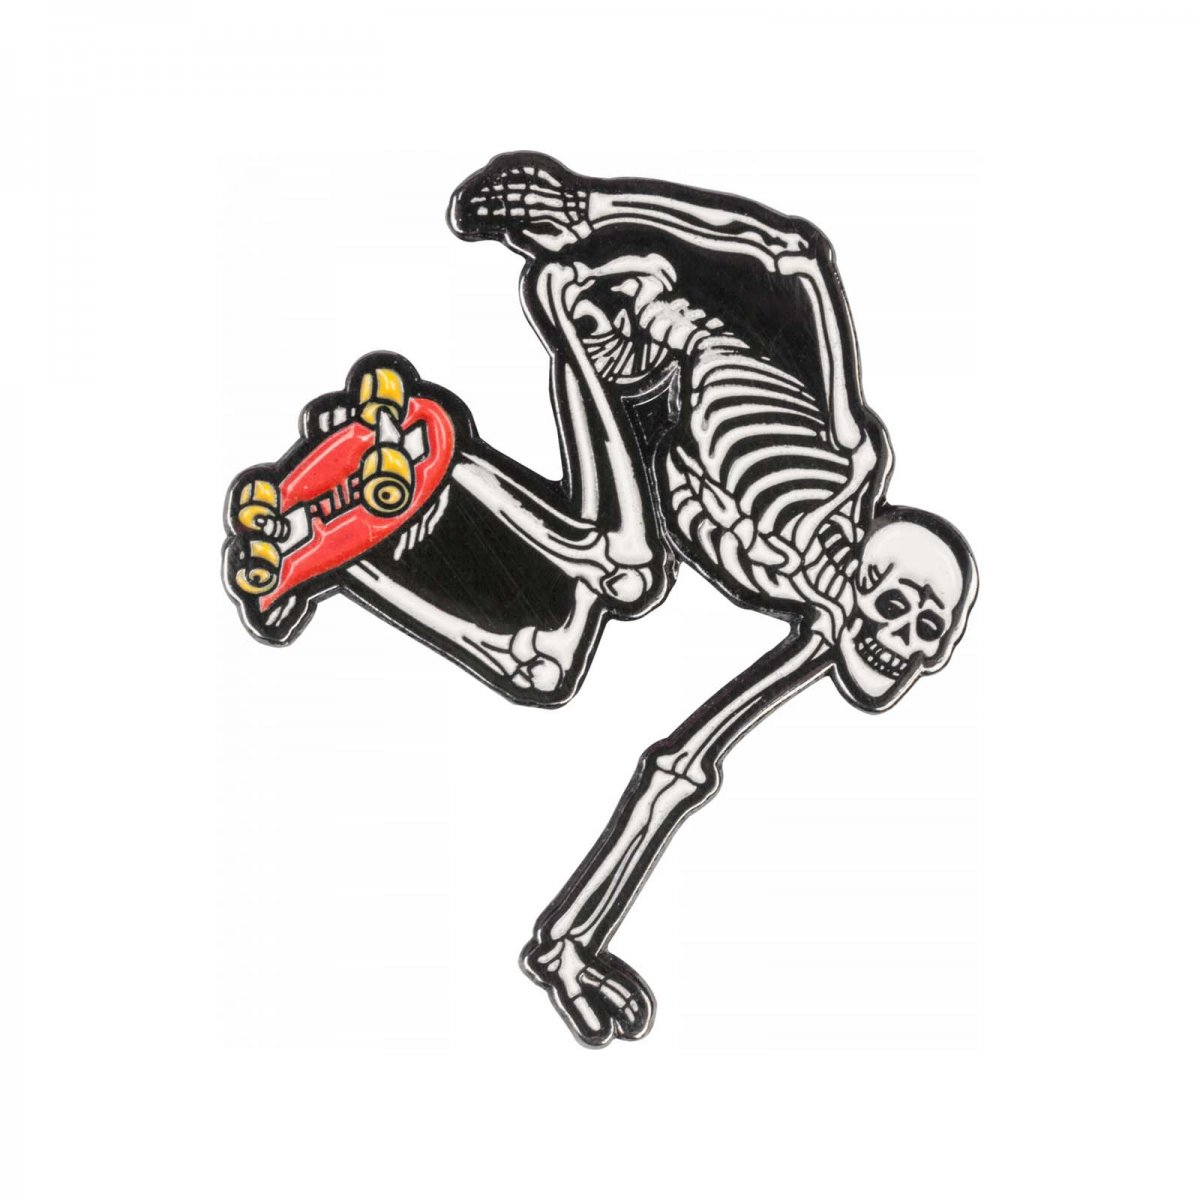 SKATEBOARD SKELETON PIN